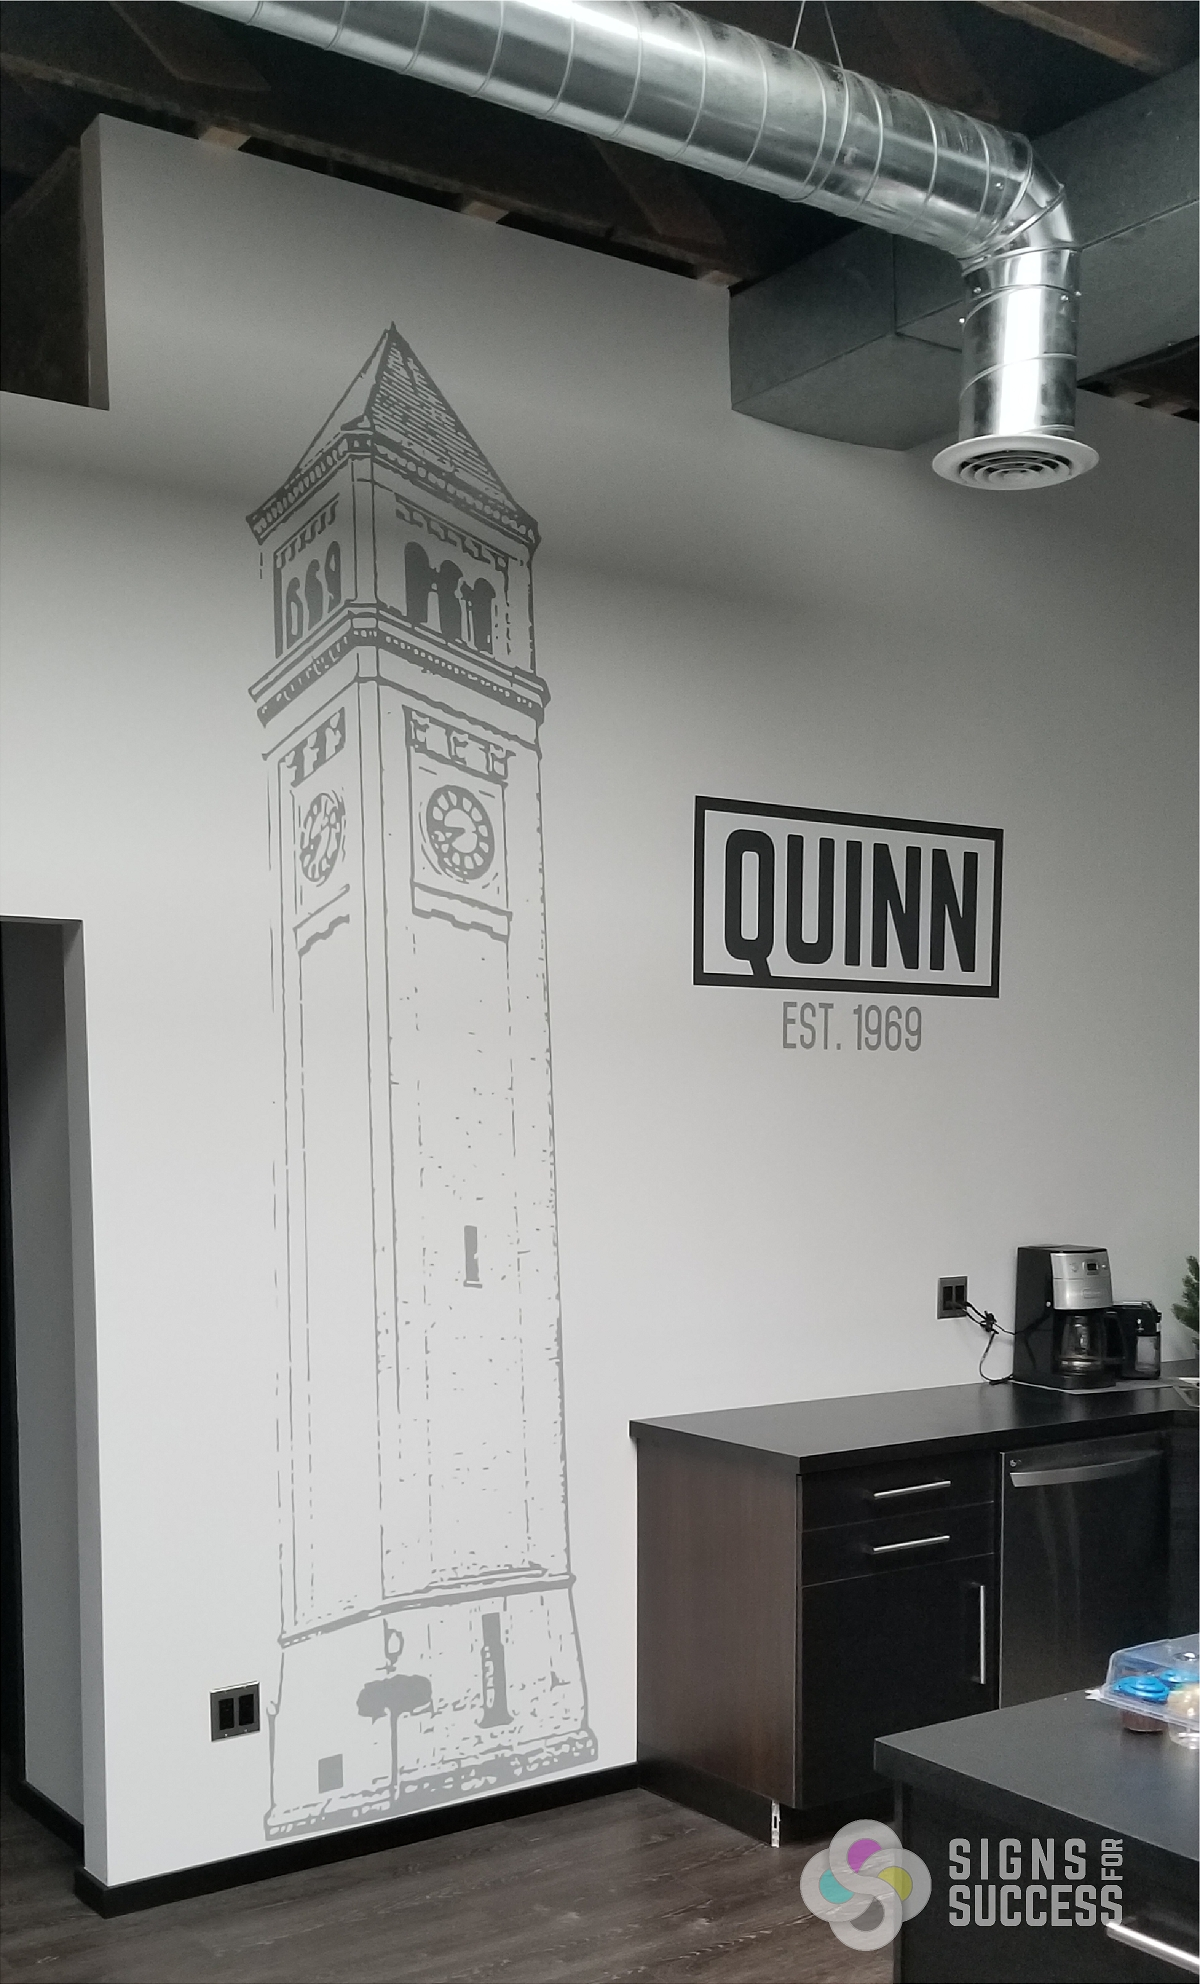 Quinn Clock Tower Wall Signs For Success